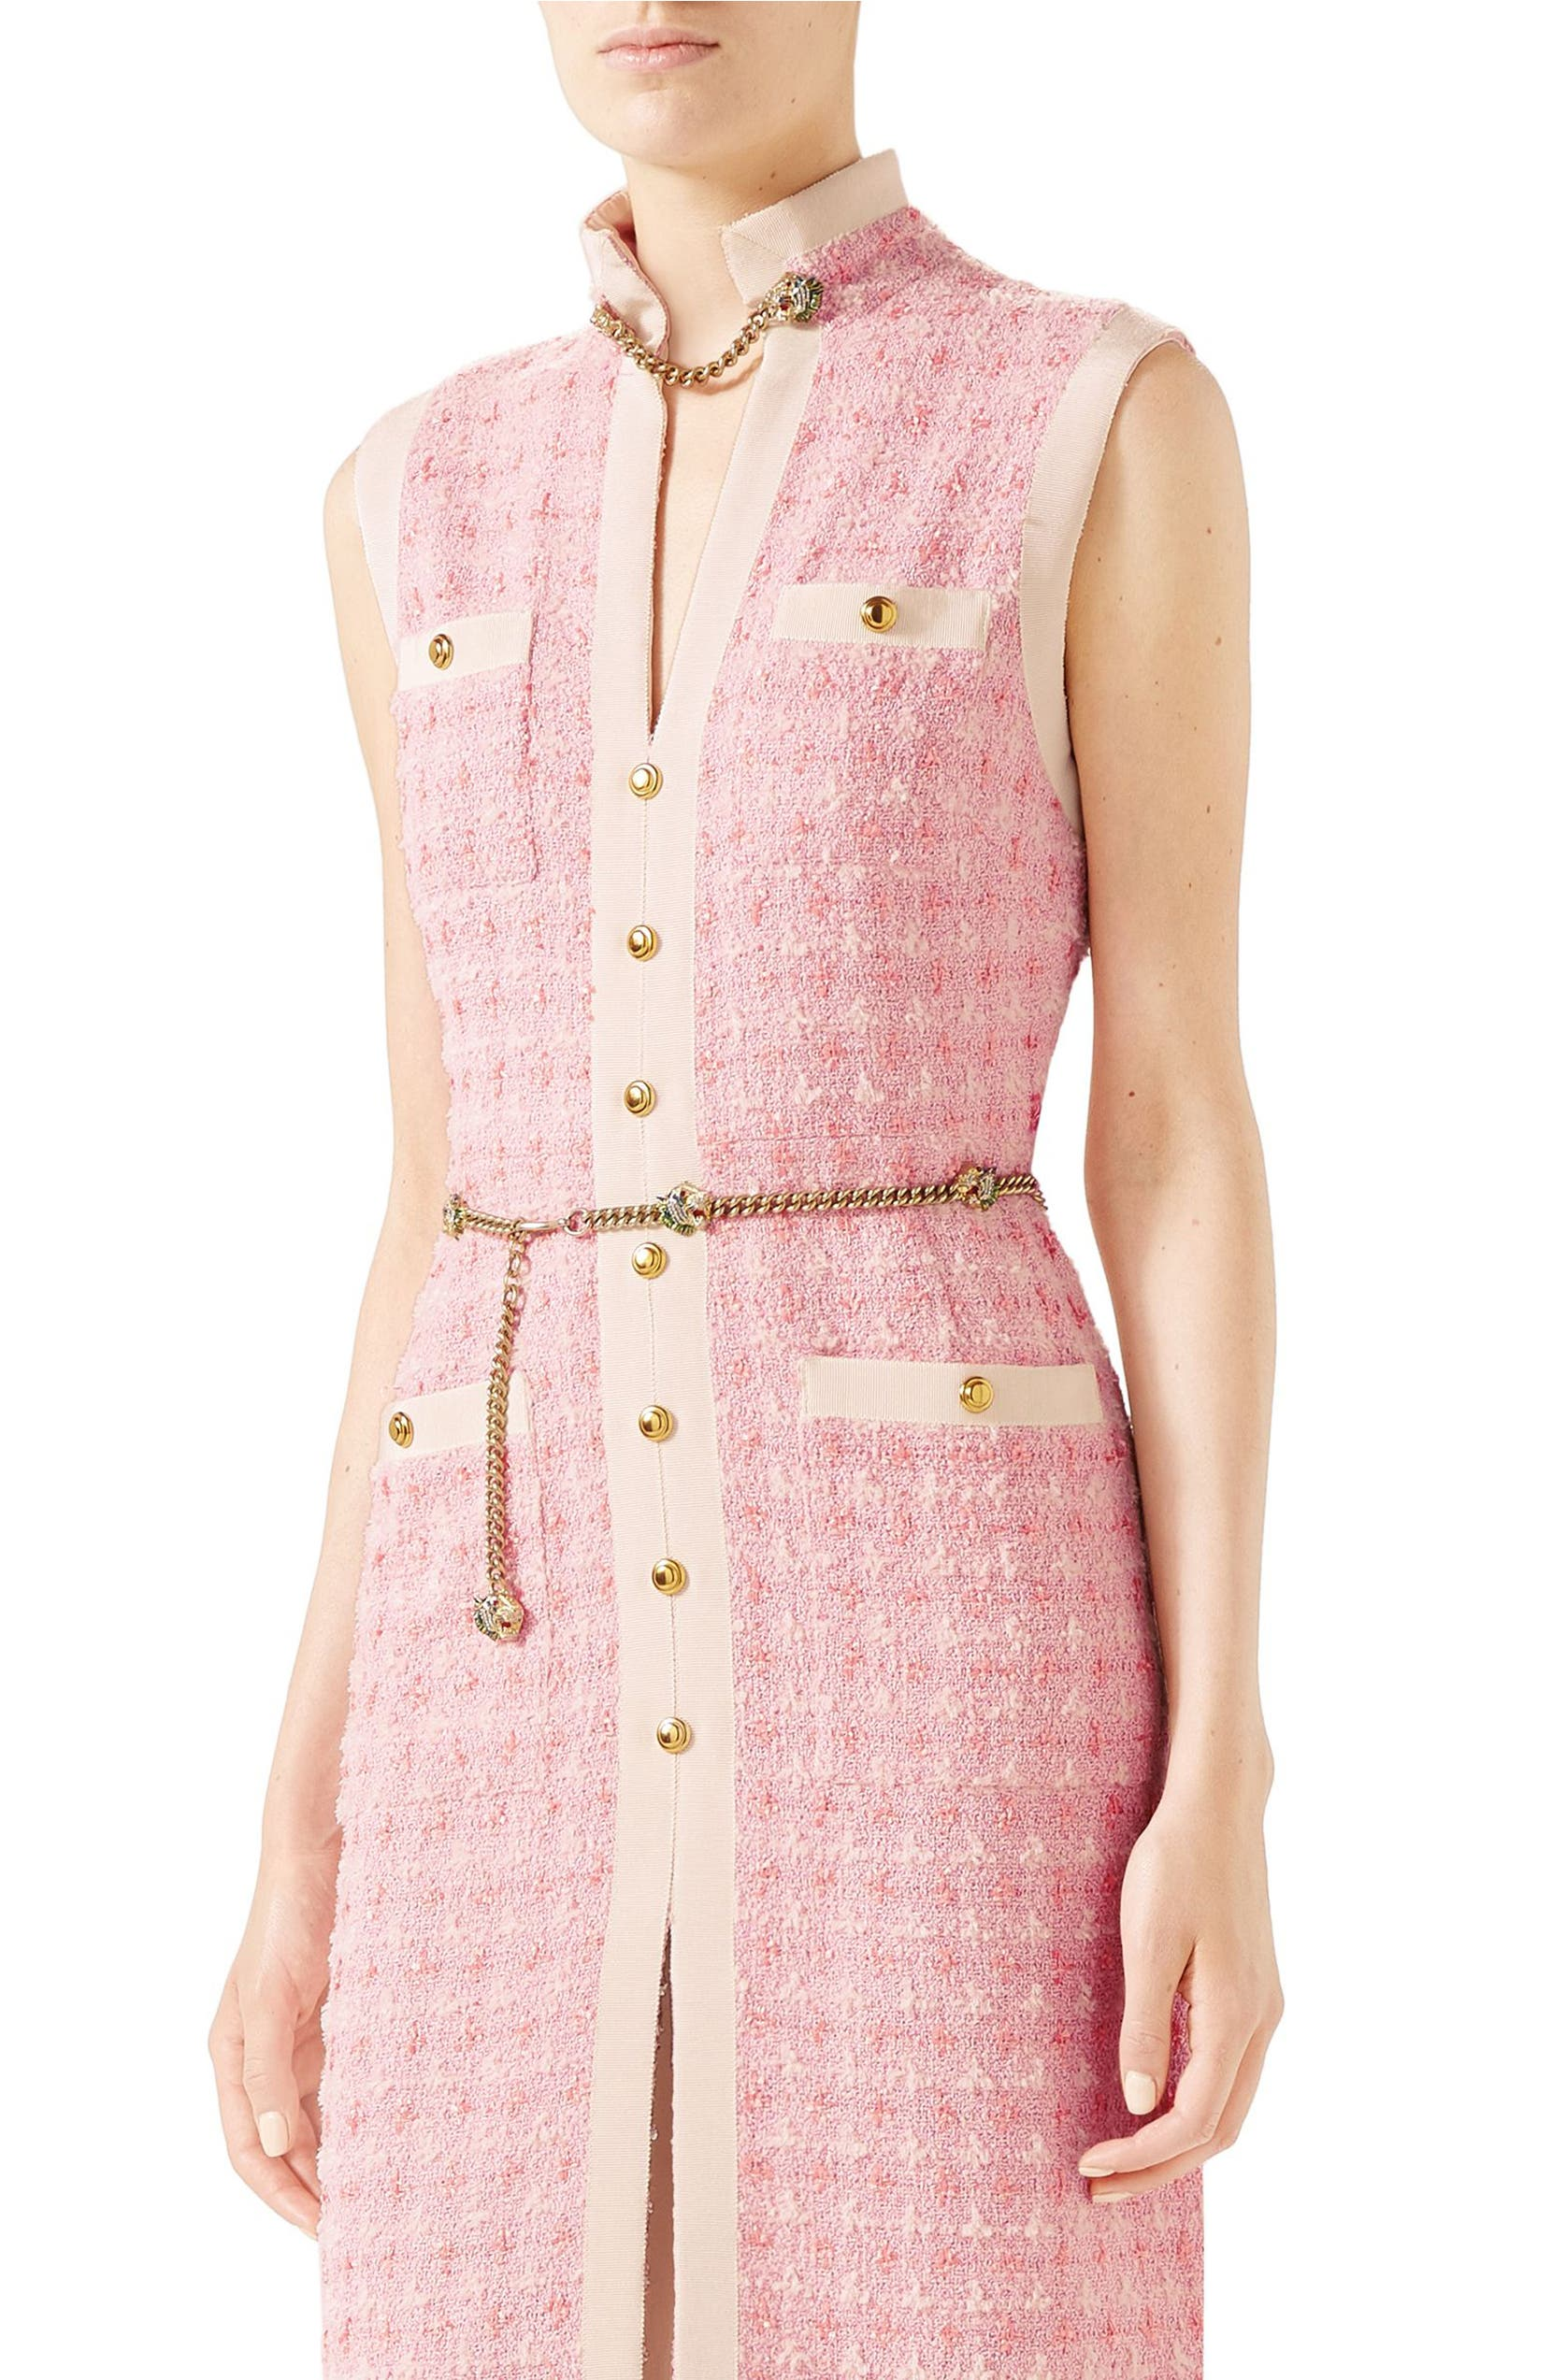 8e8c645d1c5 Gucci Chain Embellished Tweed Dress | Nordstrom